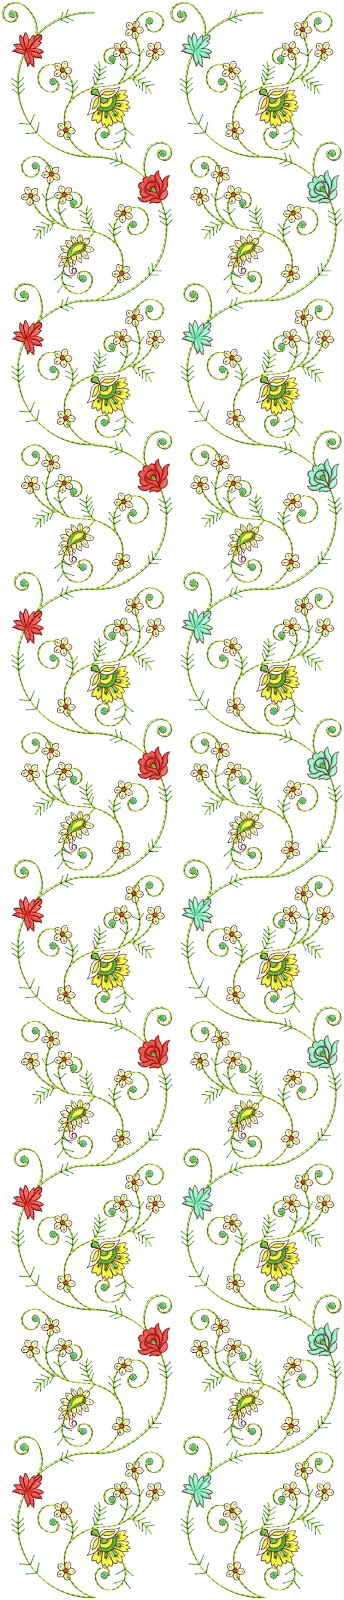 Embdesigntube georgatte all over embroidery designs by tarang